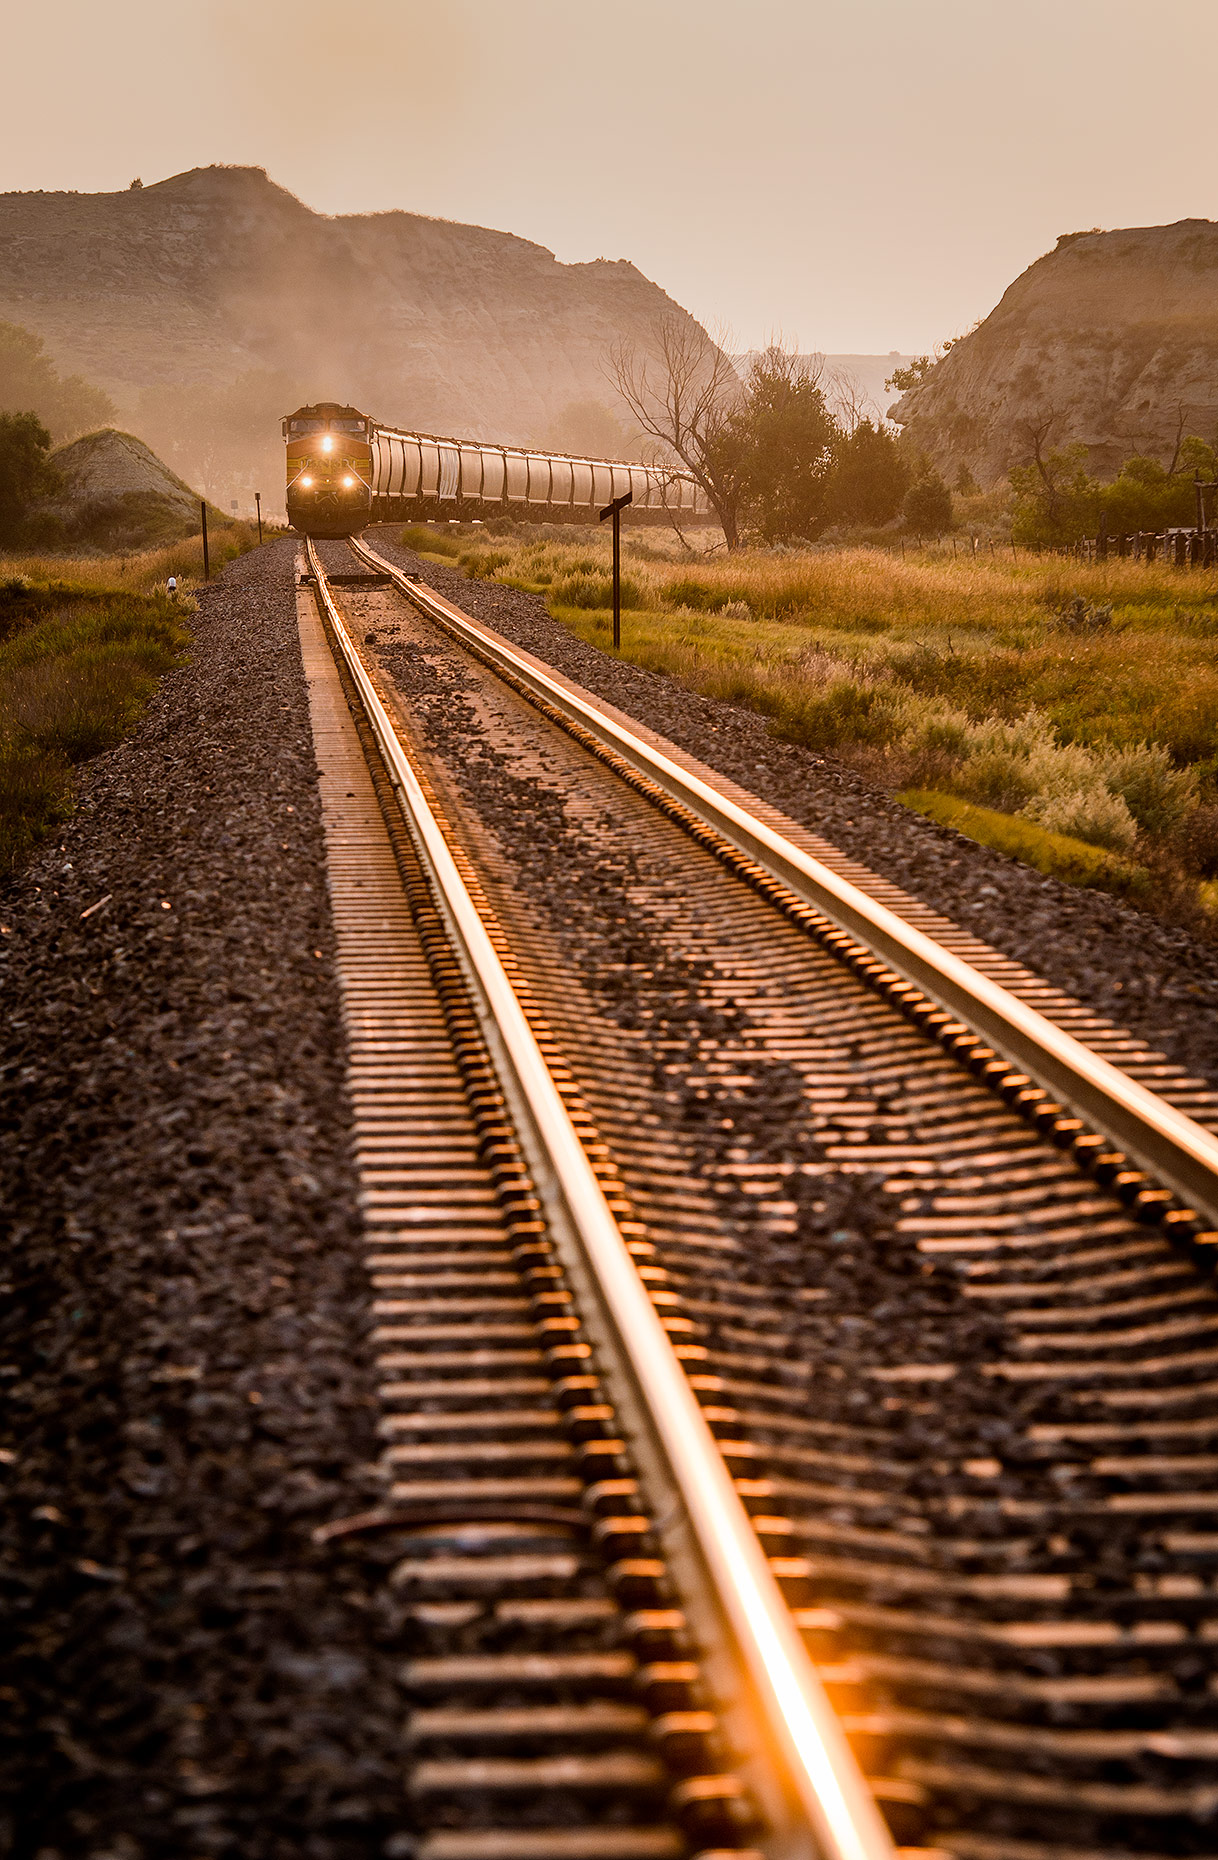 Train on Tracks at Sunrise